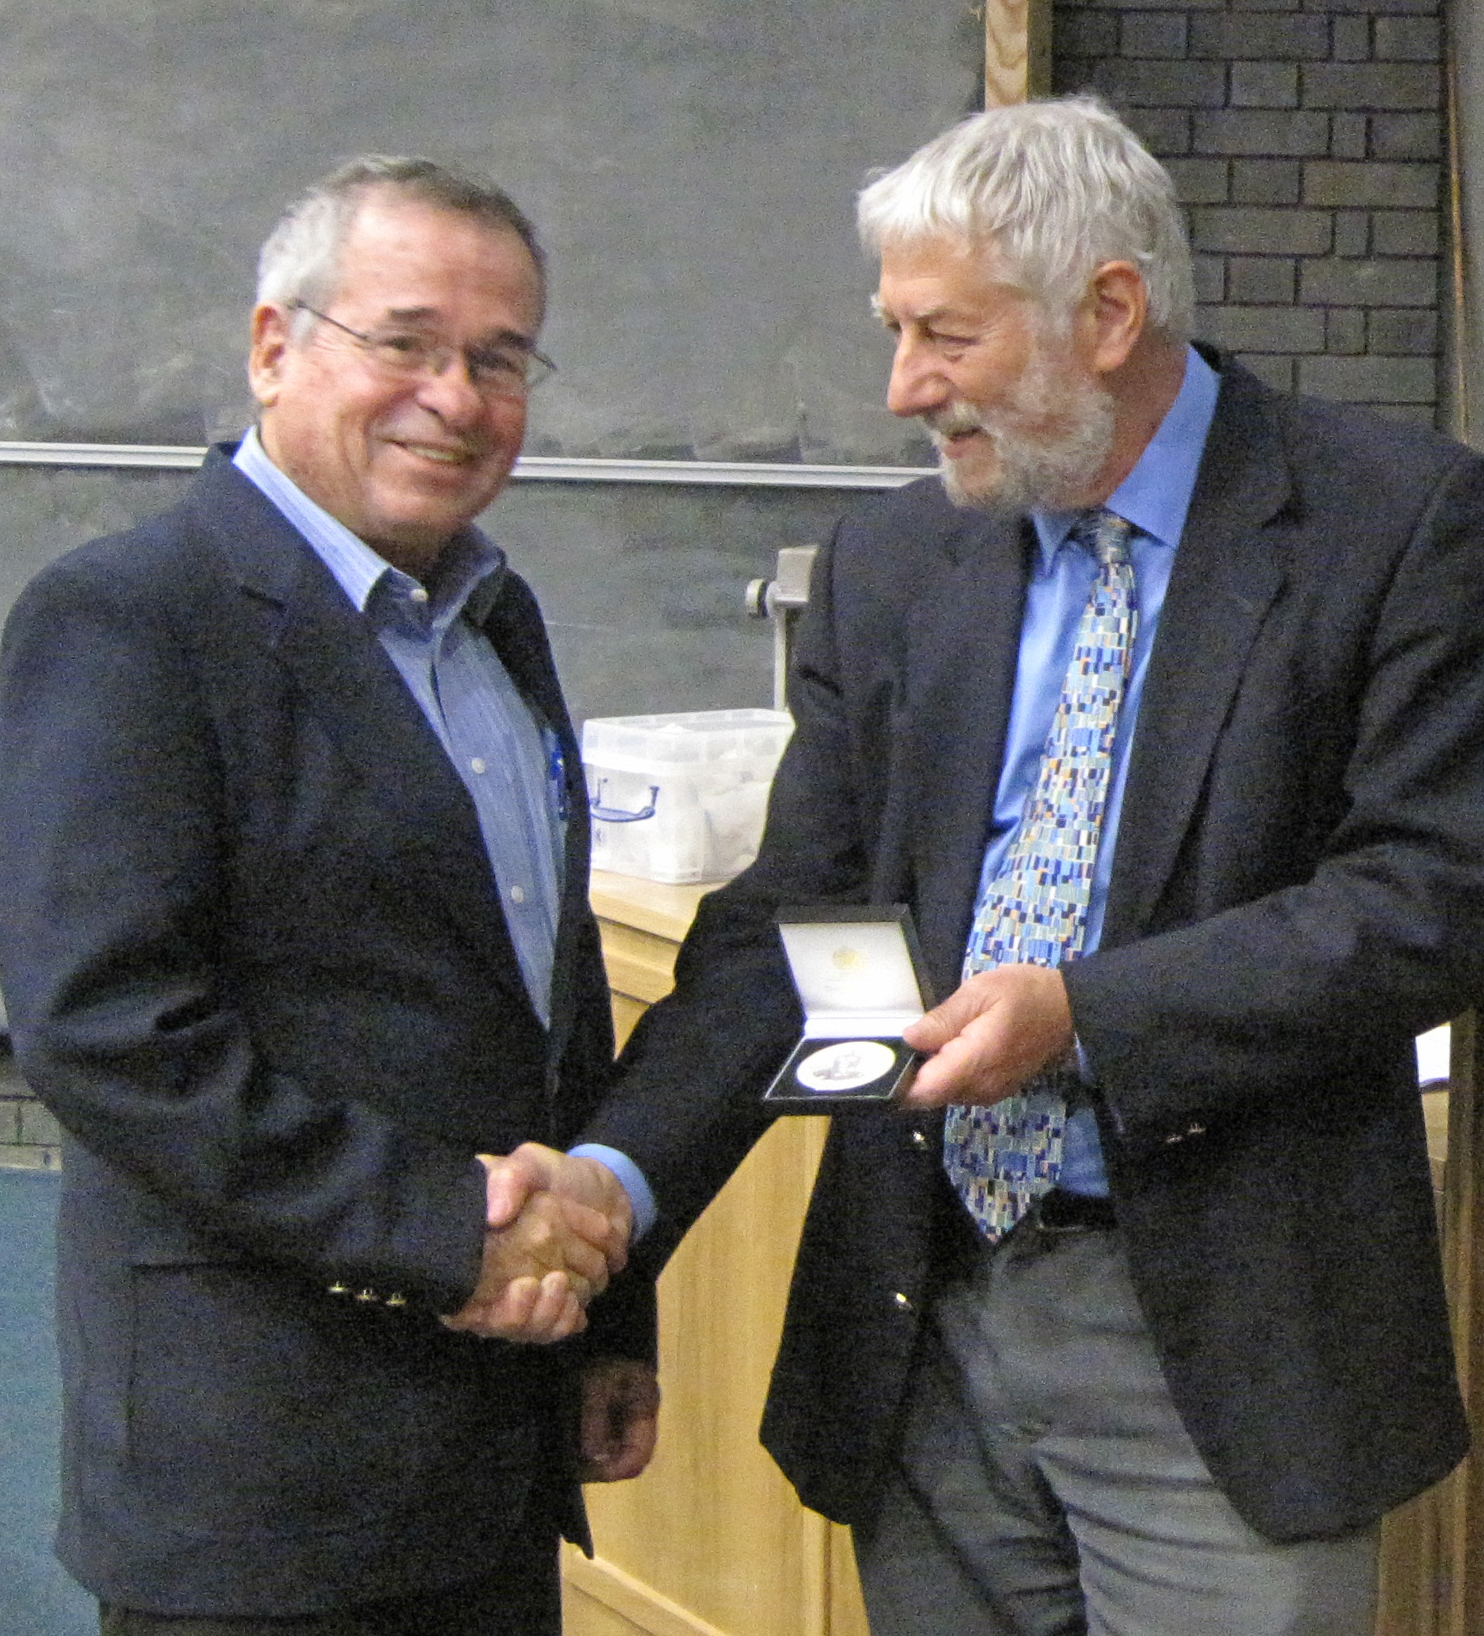 Arieh Warshel, left, receives his 2012 Soft Matter and Biophysical Chemistry Award from Graham Hutchings of the Royal Society of Chemistry during a three-day symposium in England. (Photo/Courtesy of the Royal Society of Chemistry)